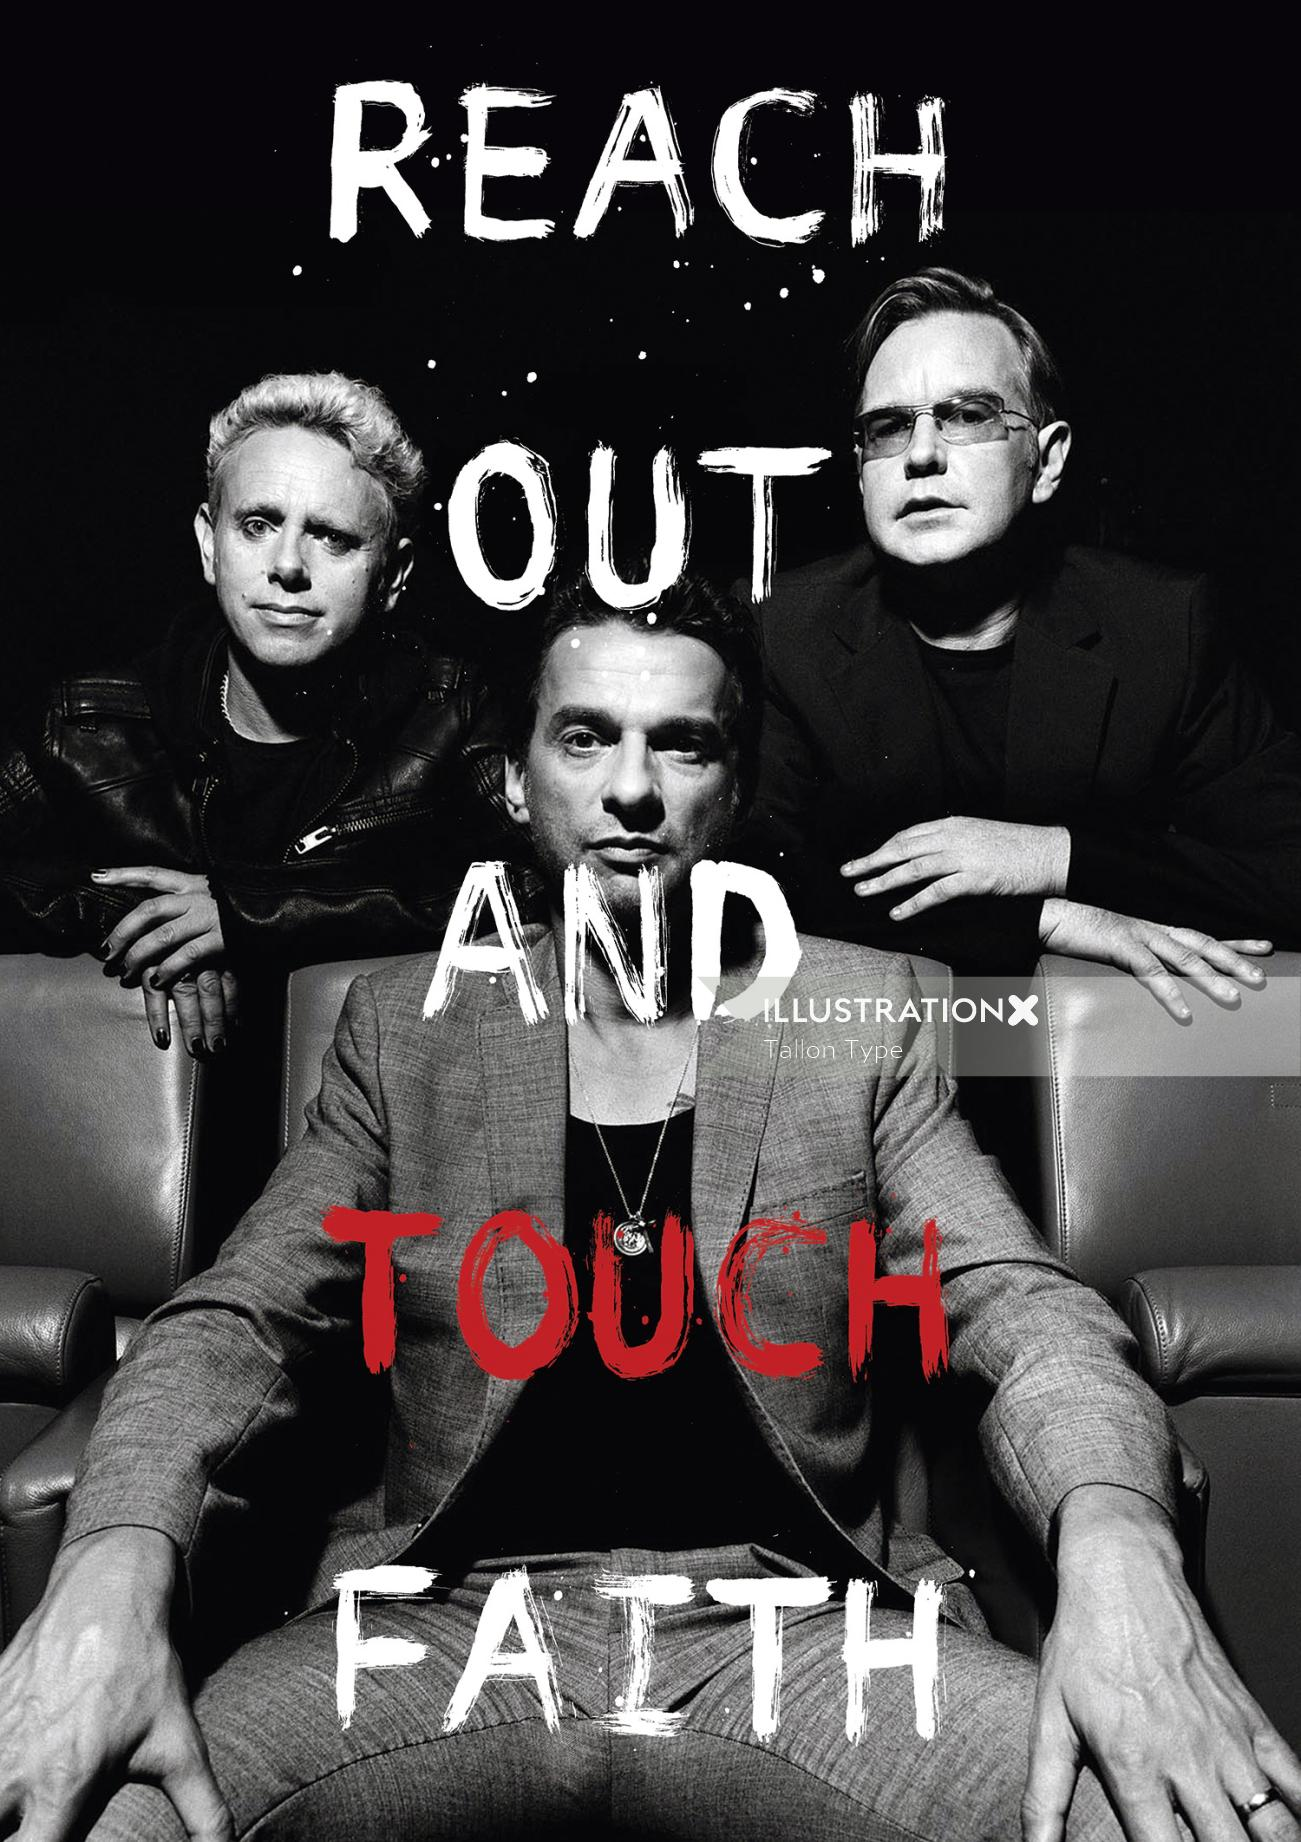 Out and touch lettering by Tallon Type